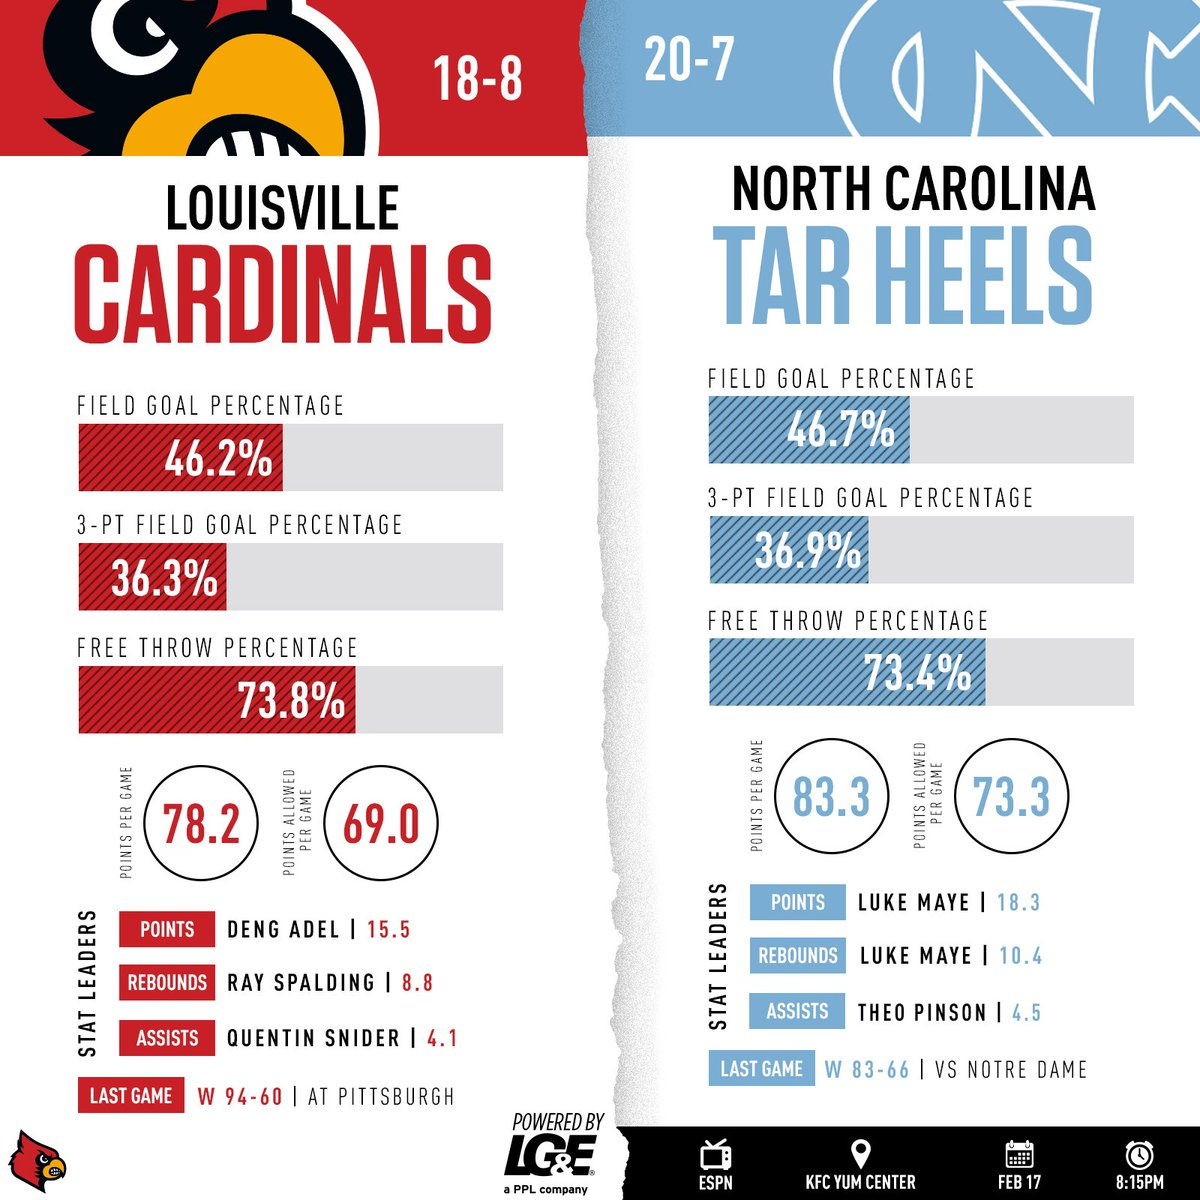 Cards Host No. 14 Tar Heels on Saturday Night  White Out ⚪⚪  Game Preview Here ➡️https://t.co/v7WhhhTRha https://t.co/lrVKkxsbT8